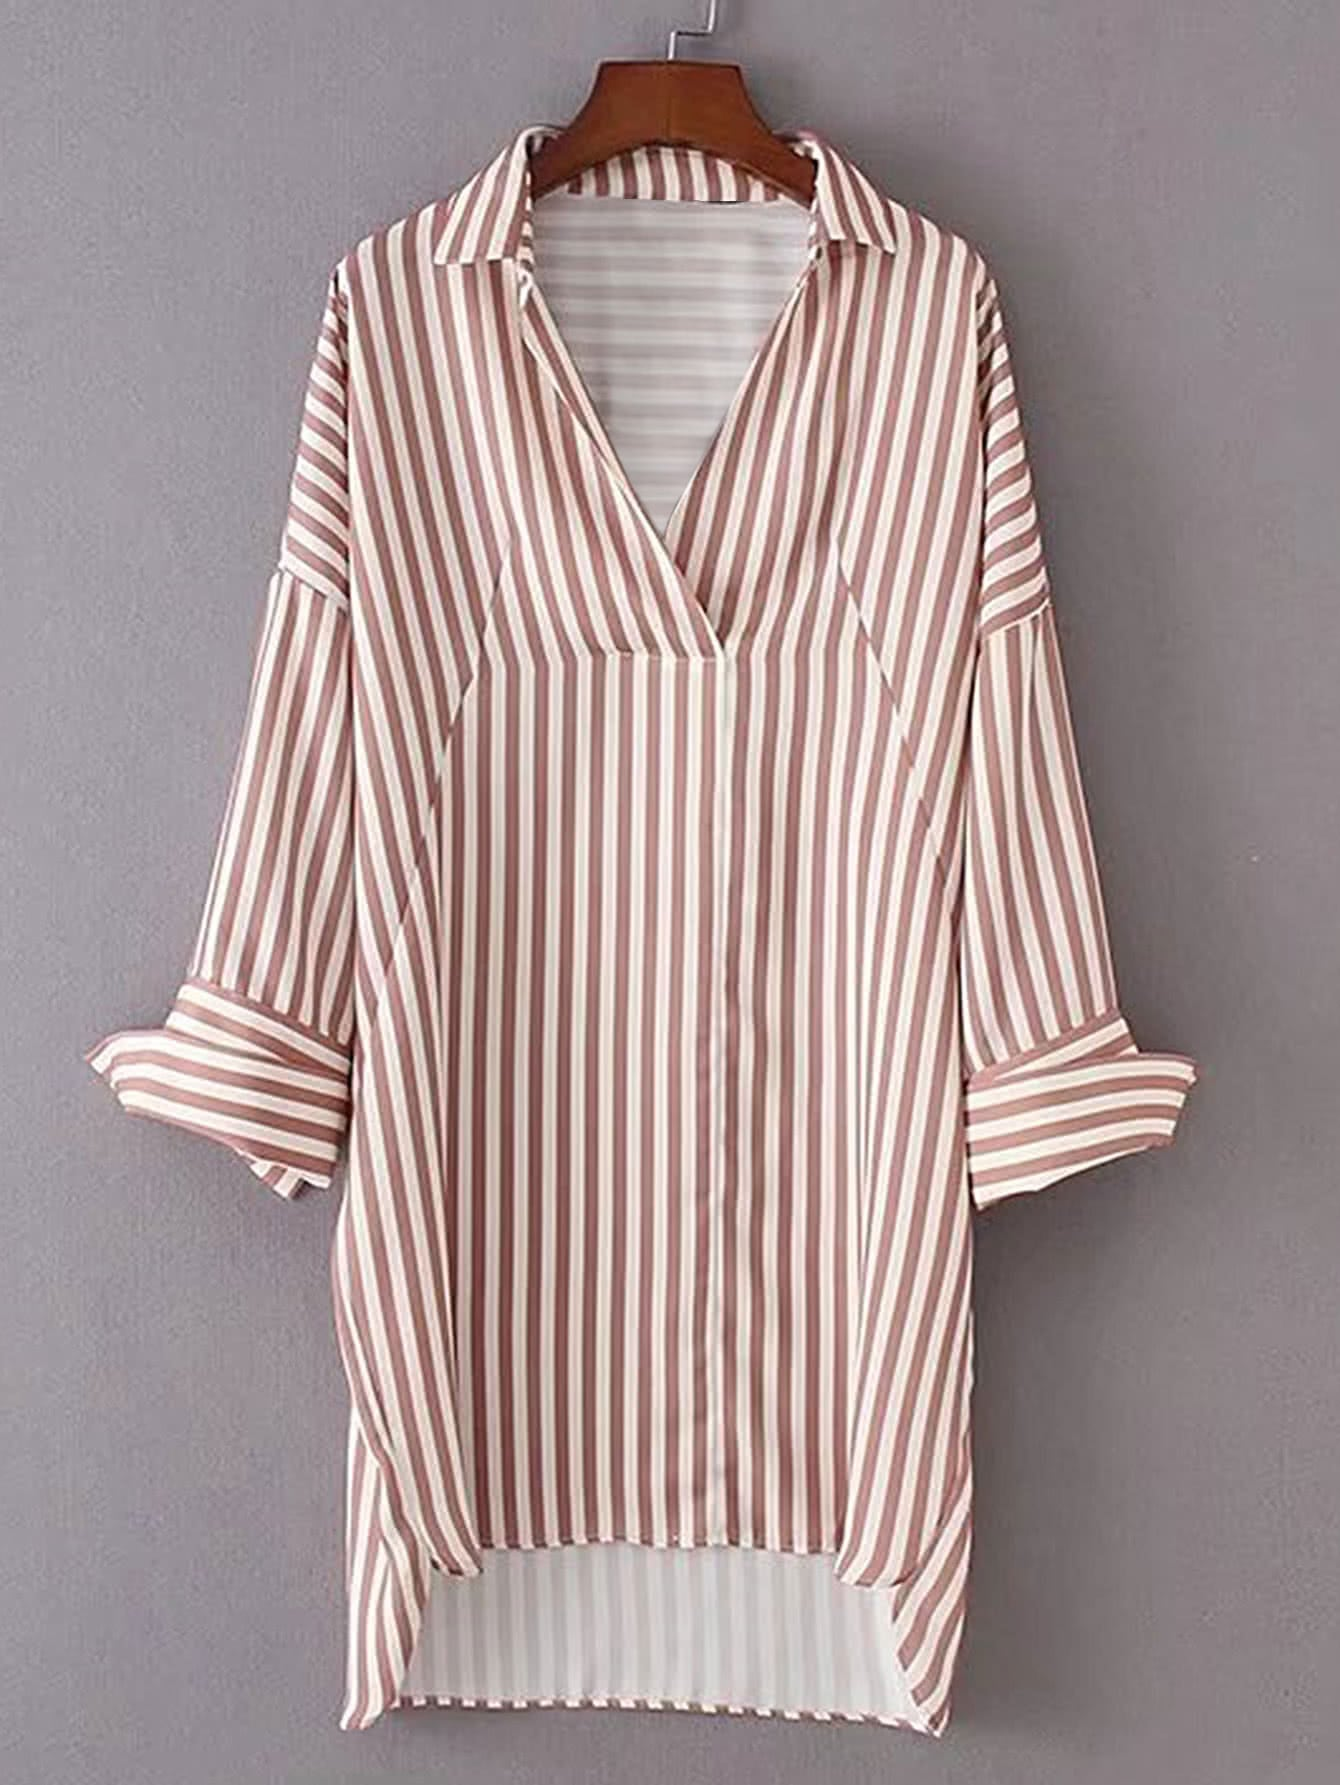 Vertical Striped High Low Shirt Dress dress170524202